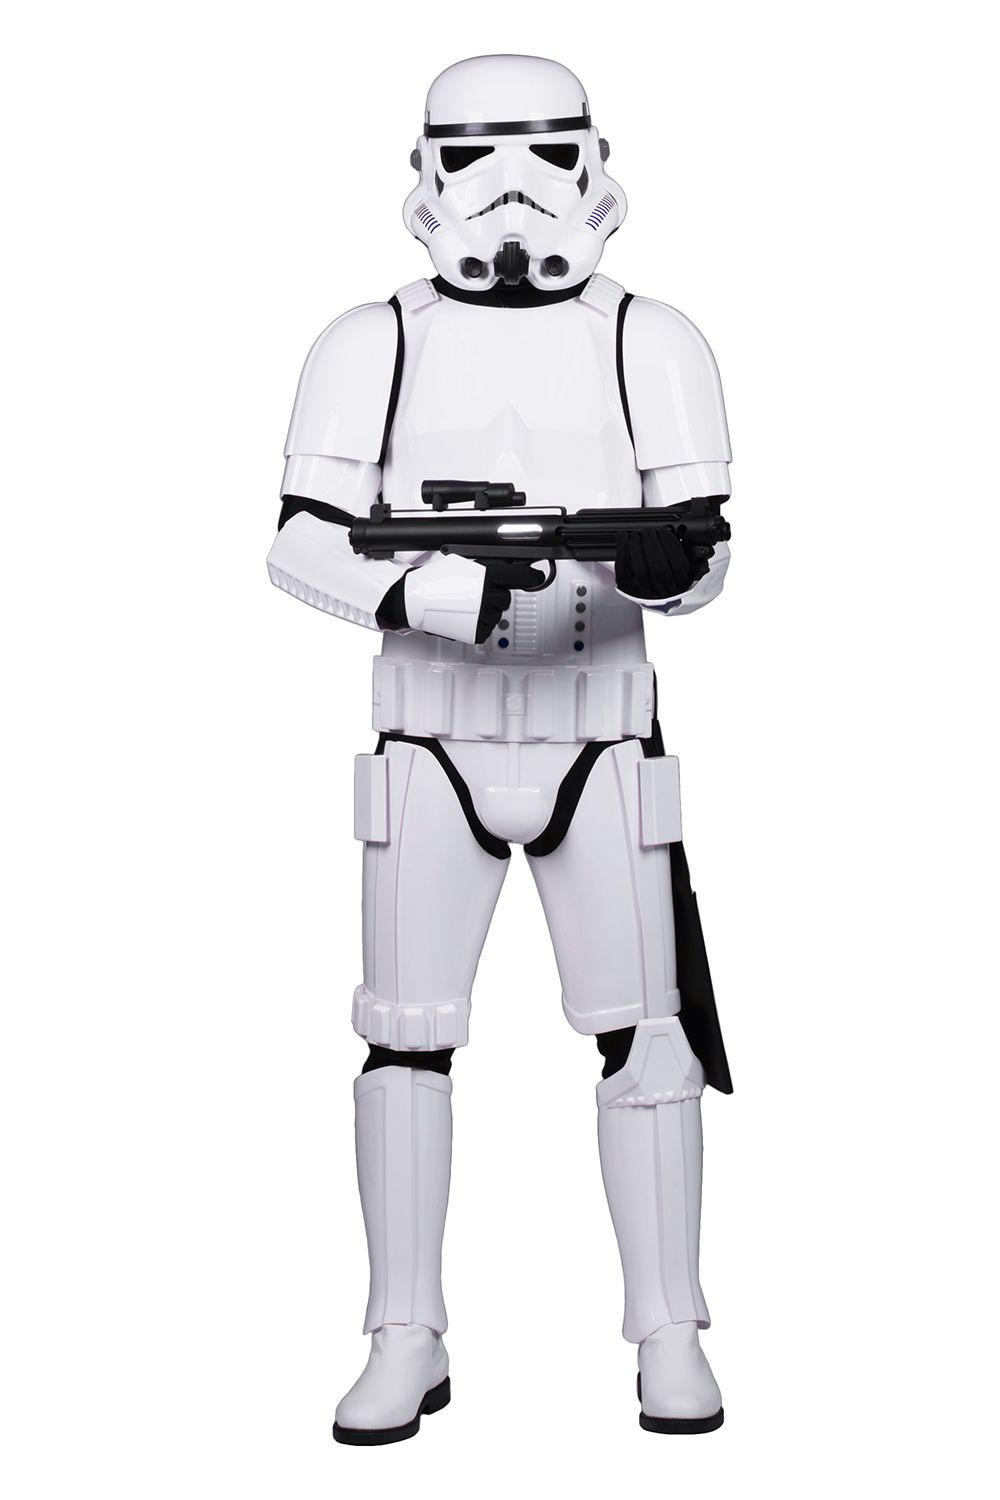 STAR WARS  Costumes and Toys - Buying a Replica Stormtrooper Costume  sc 1 st  Pinterest & STAR WARS : Costumes and Toys - Buying a Replica Stormtrooper ...